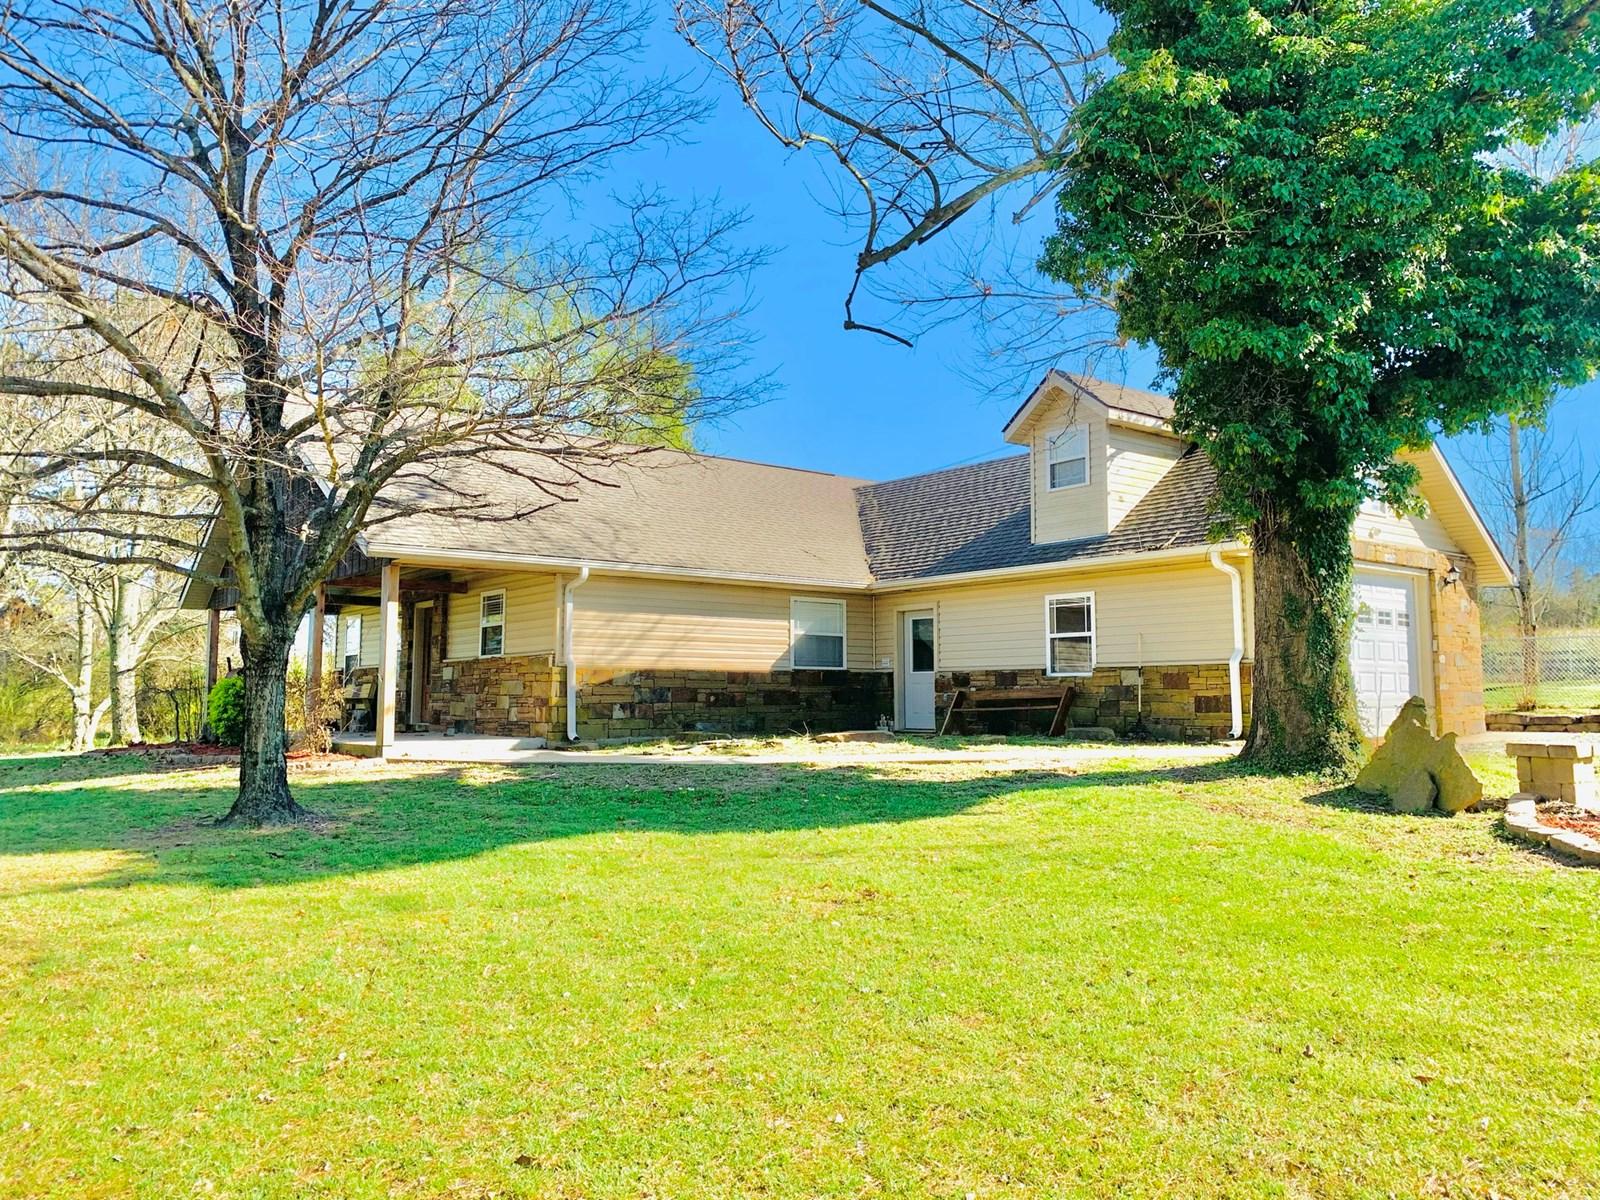 HOME FOR SALE IN CONCORD, ARKANSAS